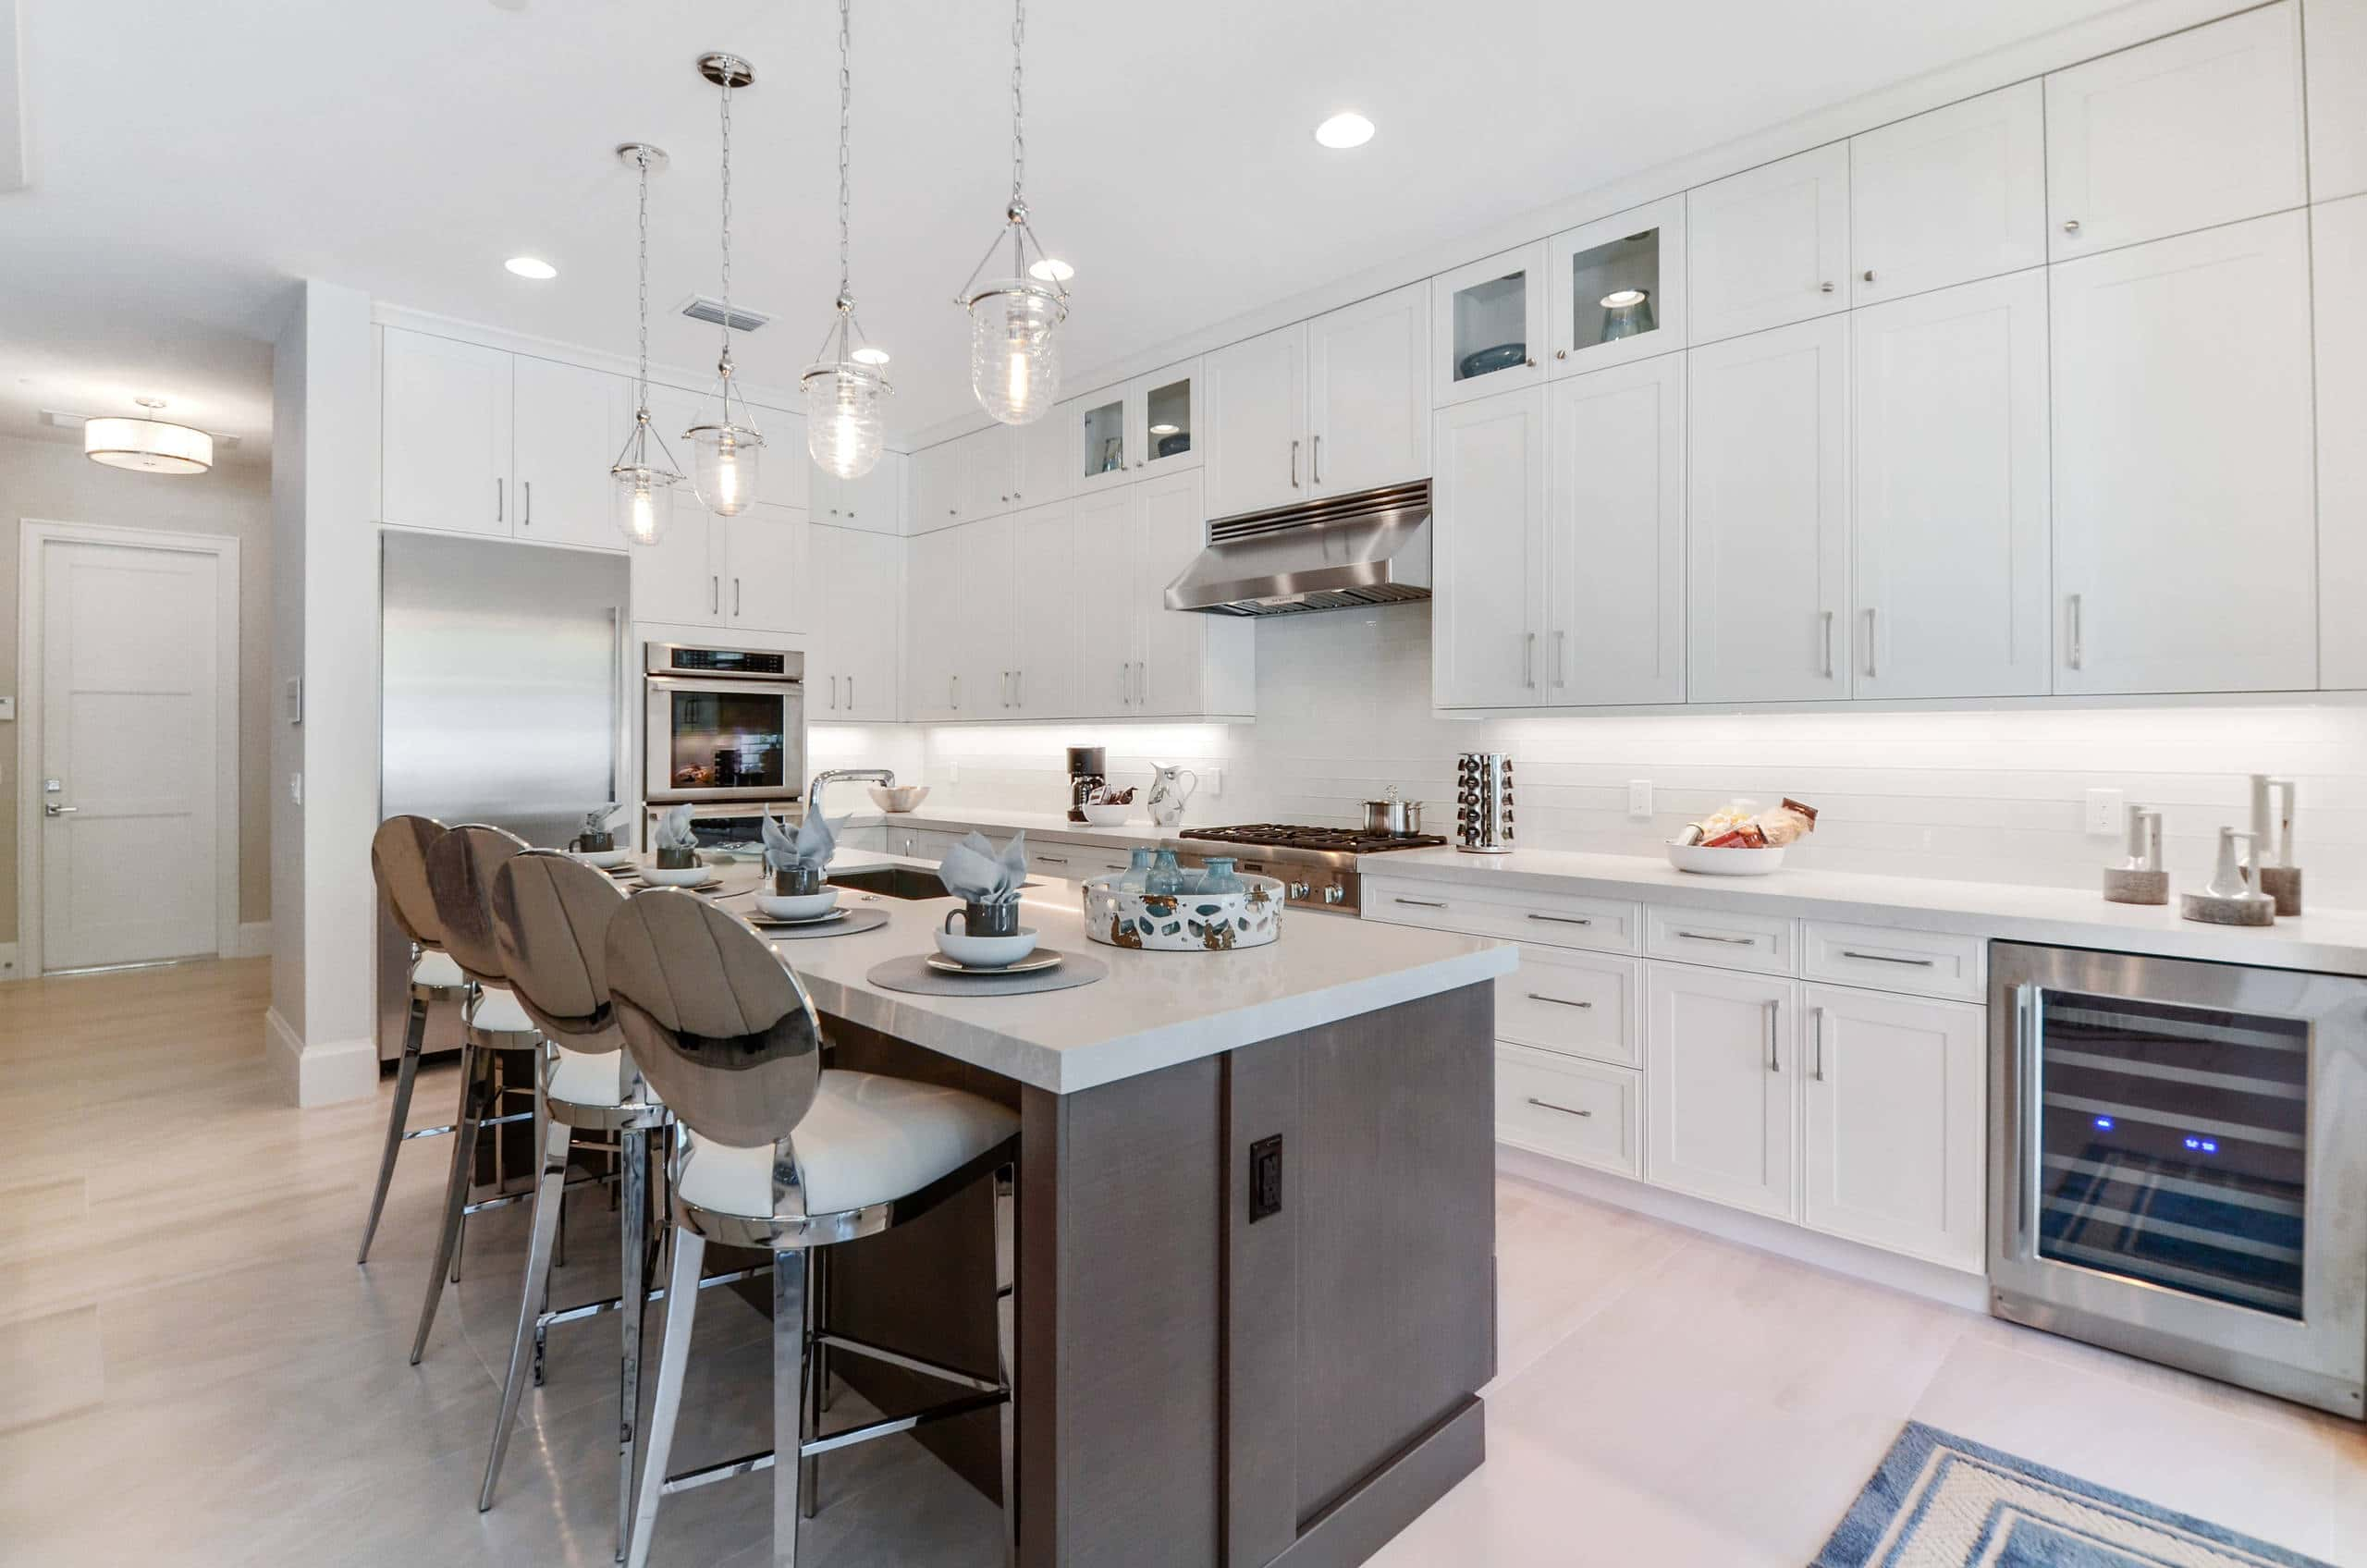 white-shaker-rta-kitchen-cabinets-with-kitchen-island